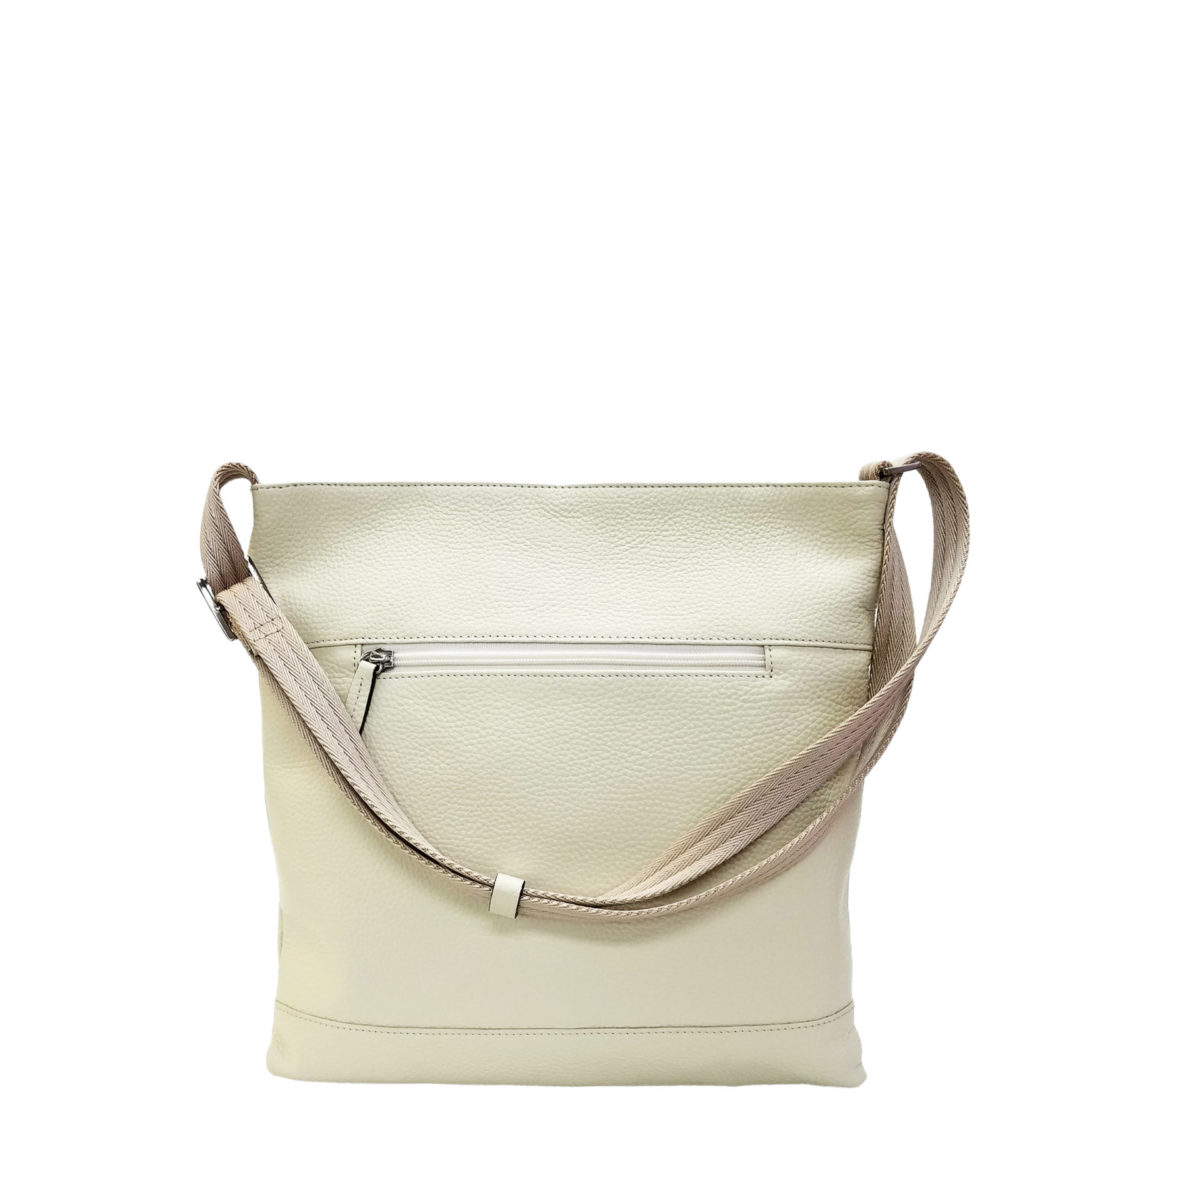 Leather Misto Sacoche ivory   caede京都